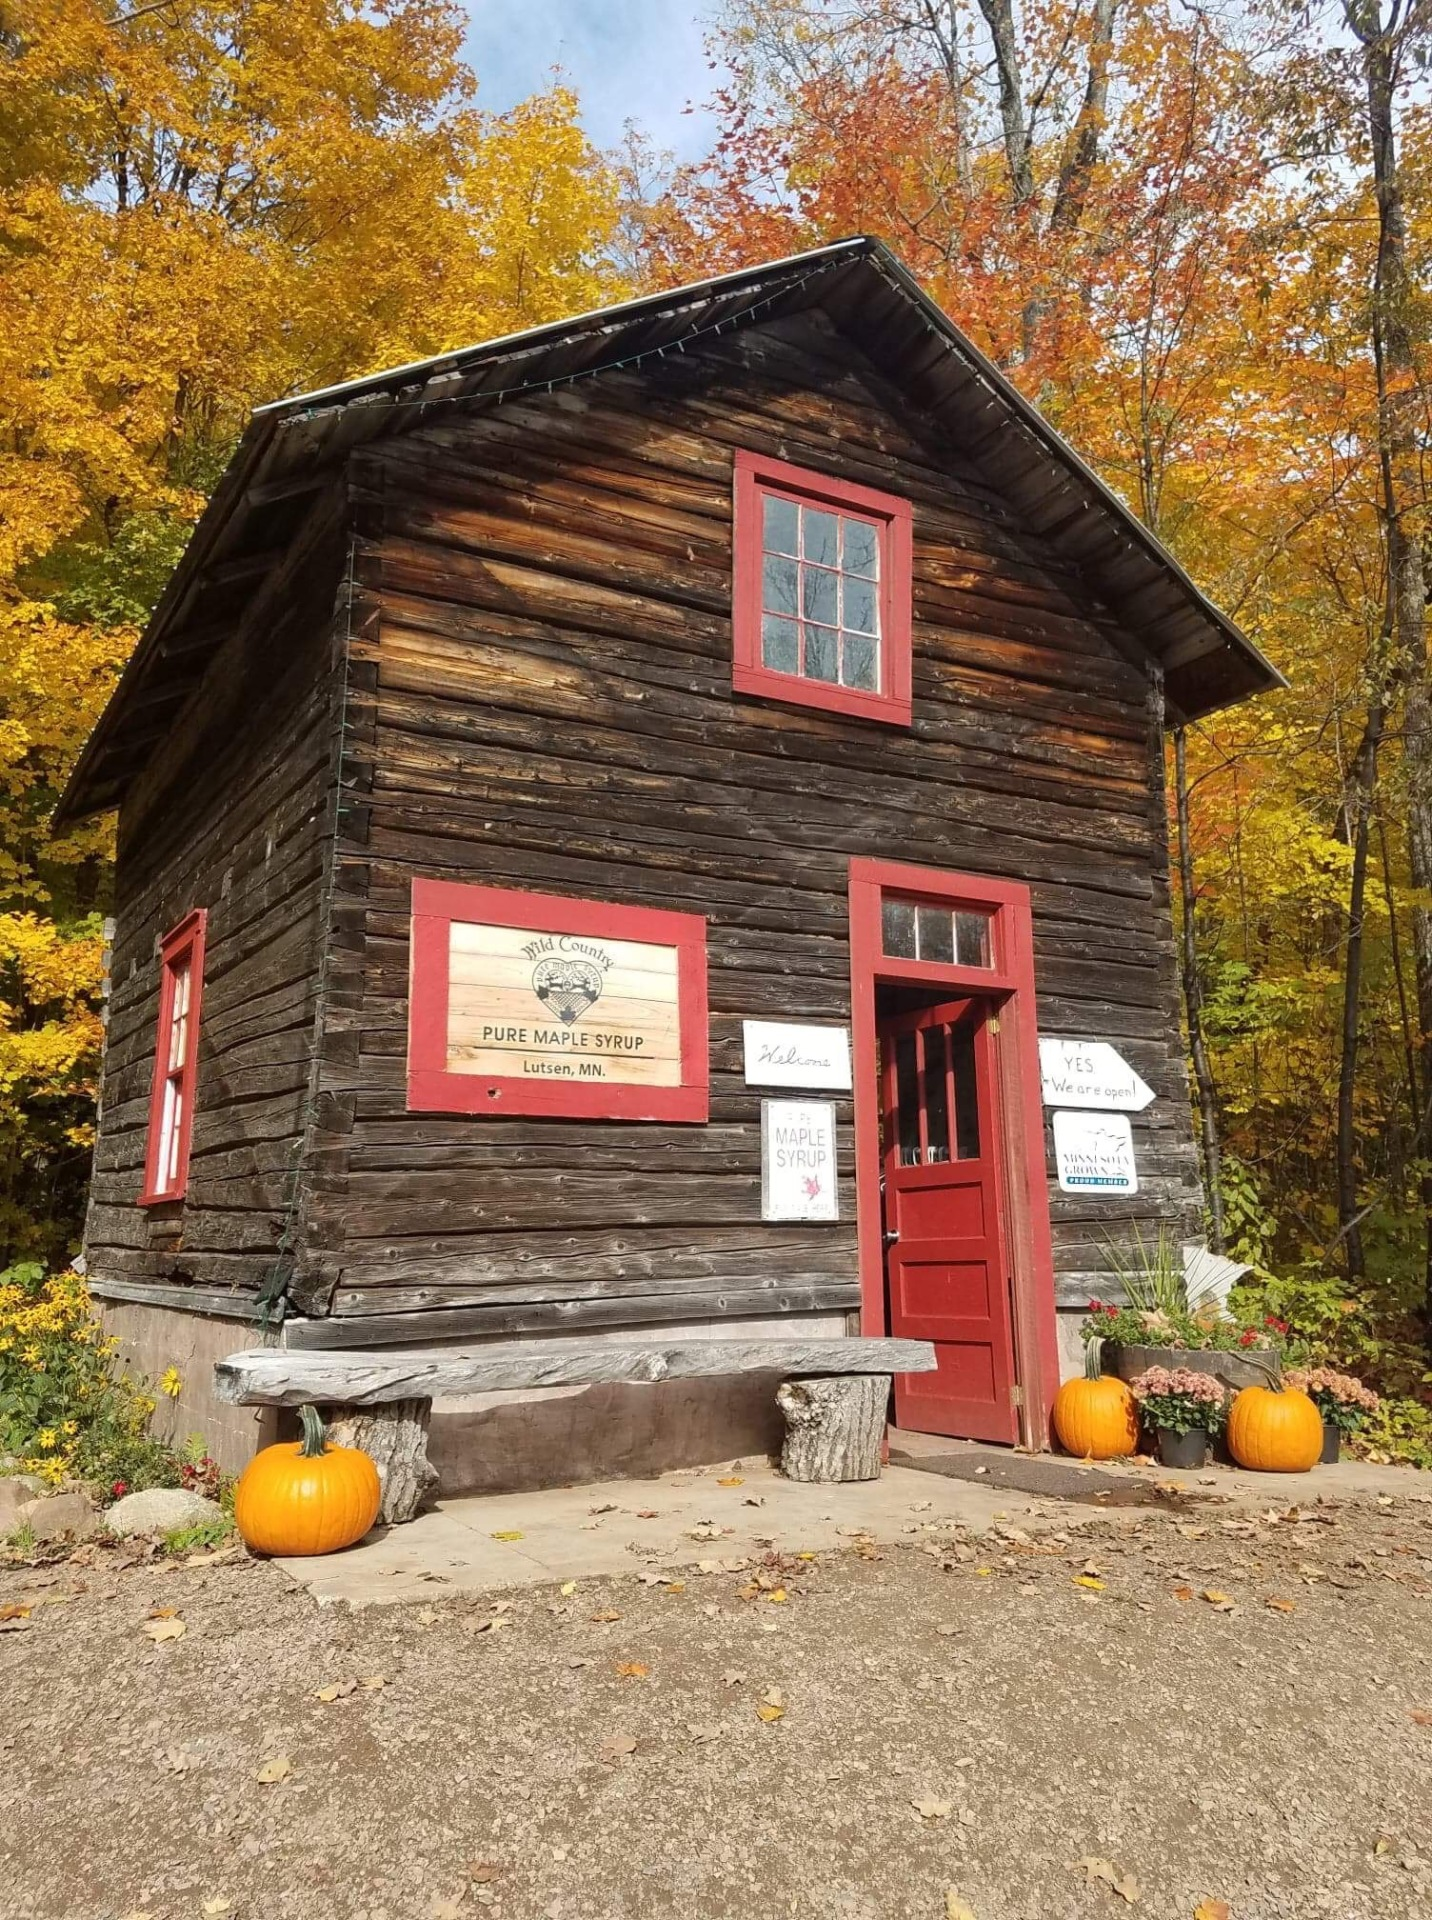 Wild Country Maple Syrup and Fall color